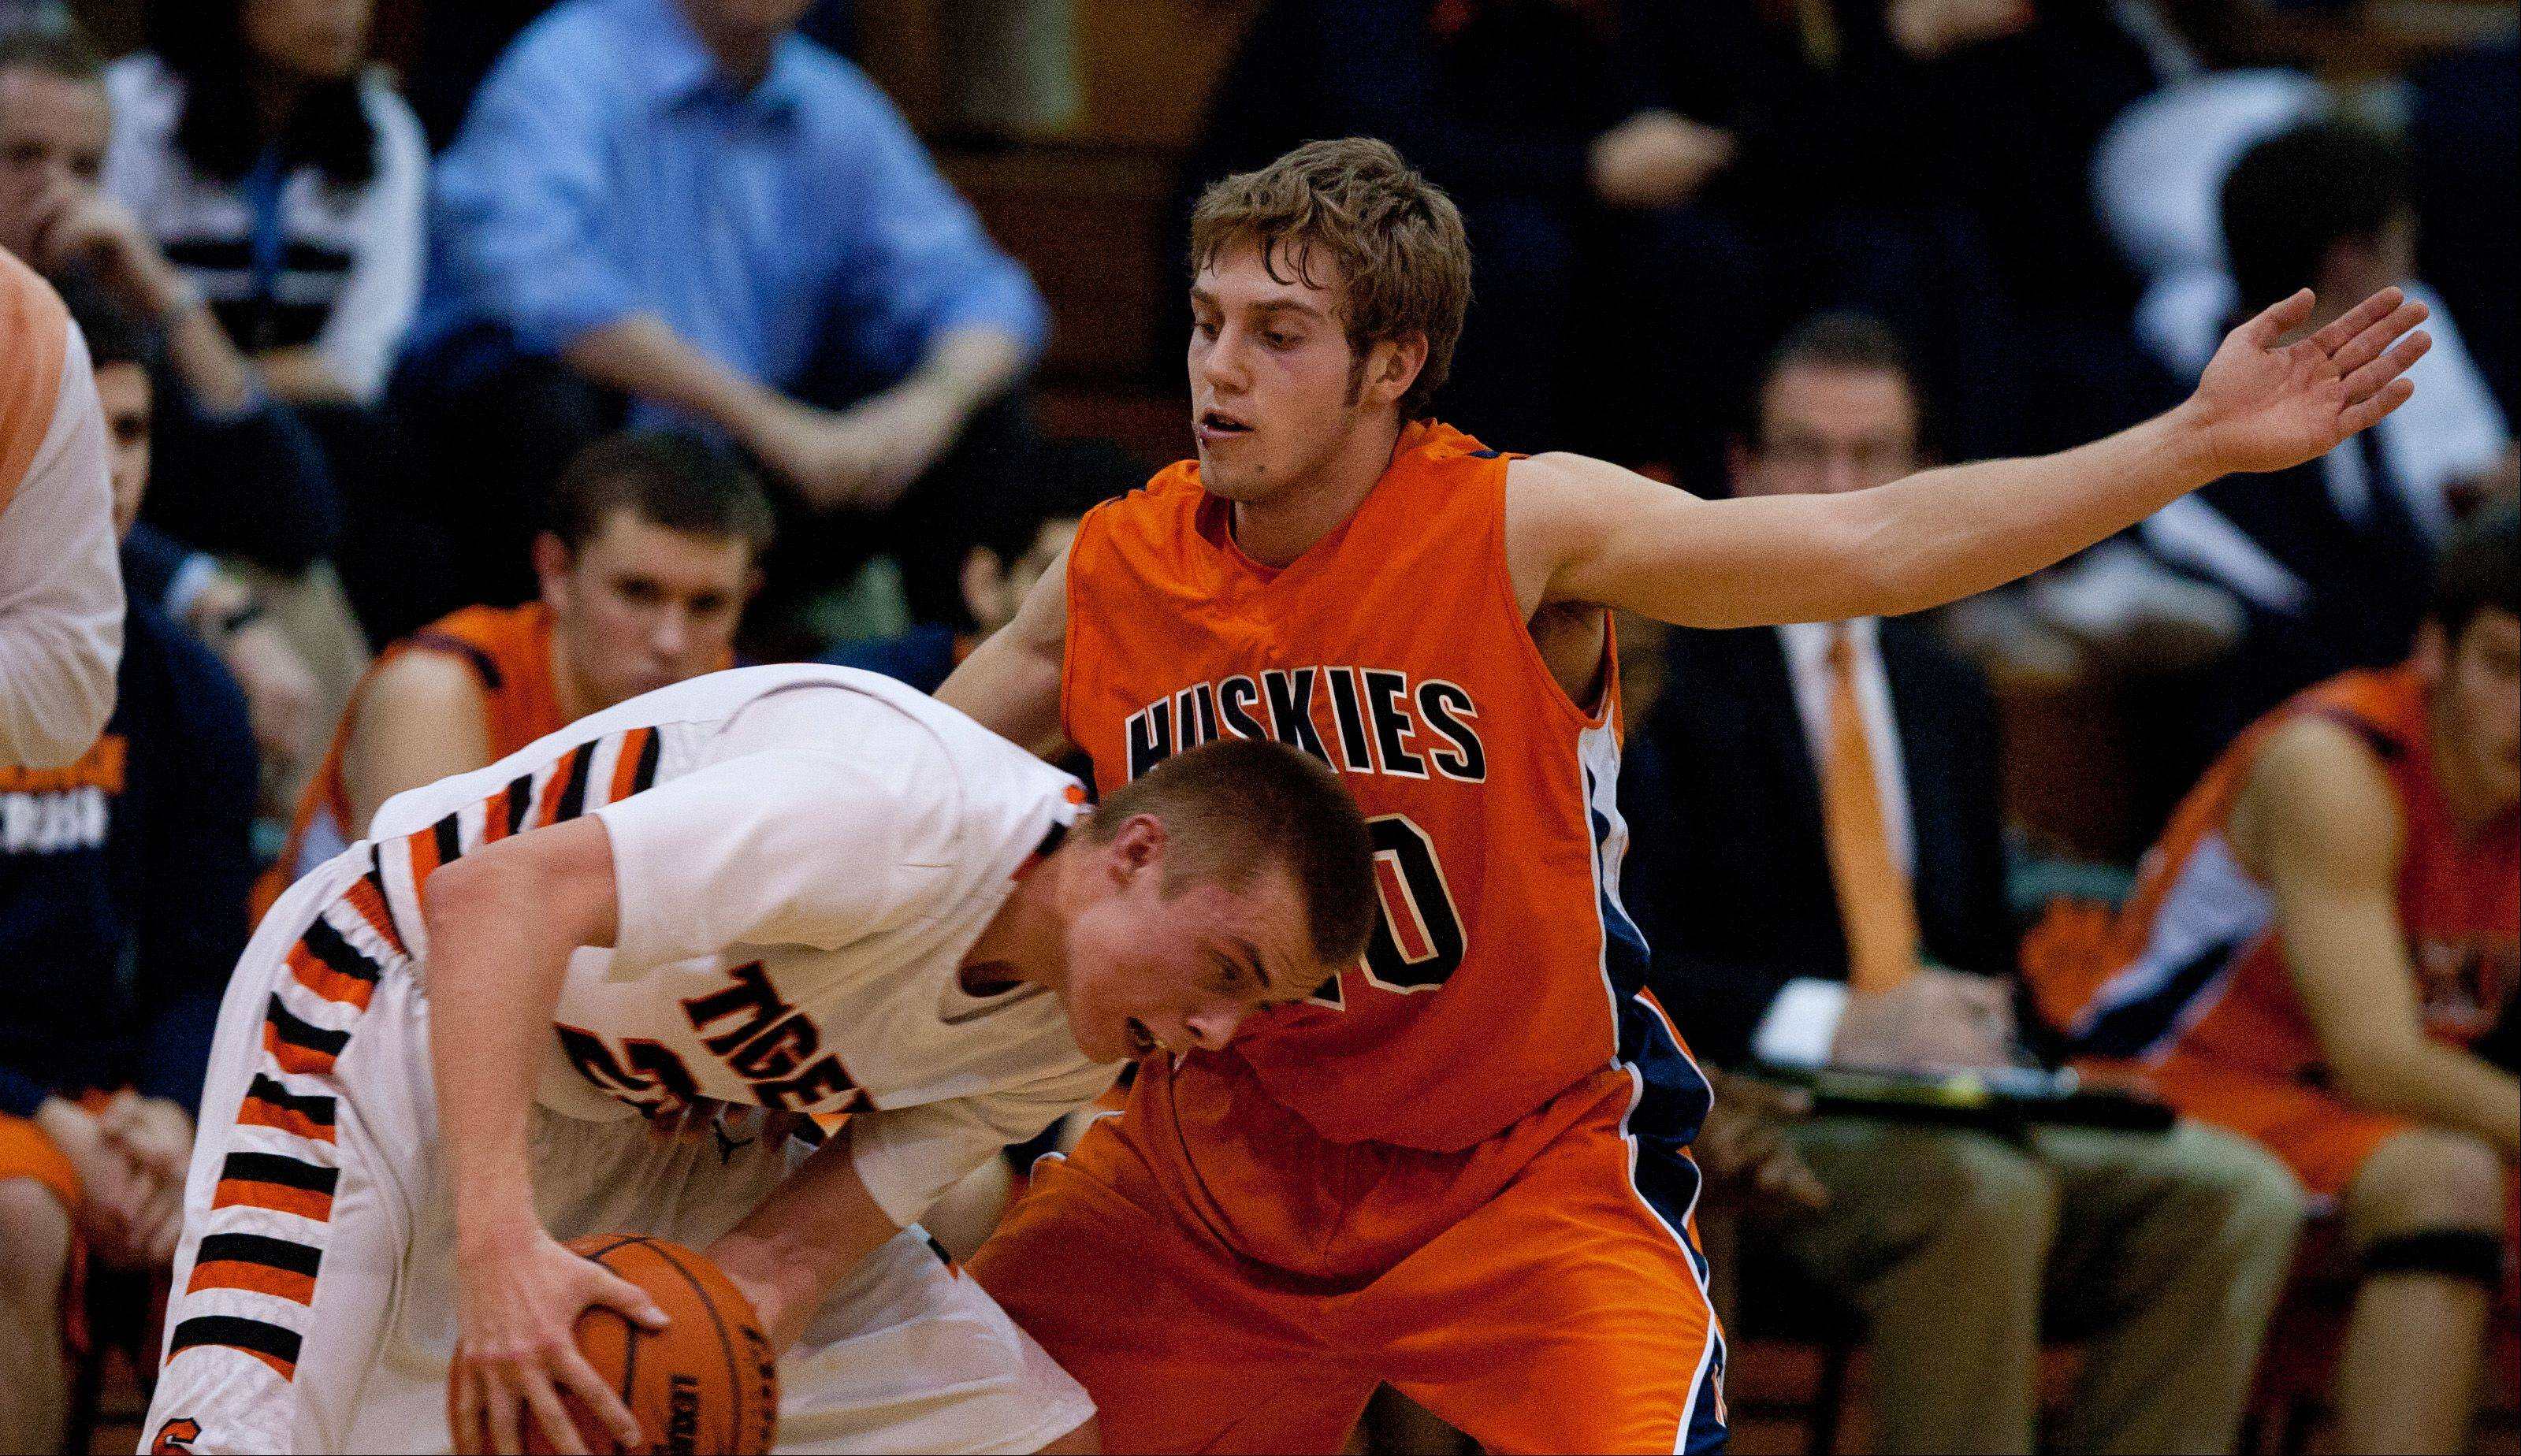 Wheaton Warrenville South�s Michael Kramer, left, lowers his head against a Naperville North defender during boys basketball action in Wheaton.